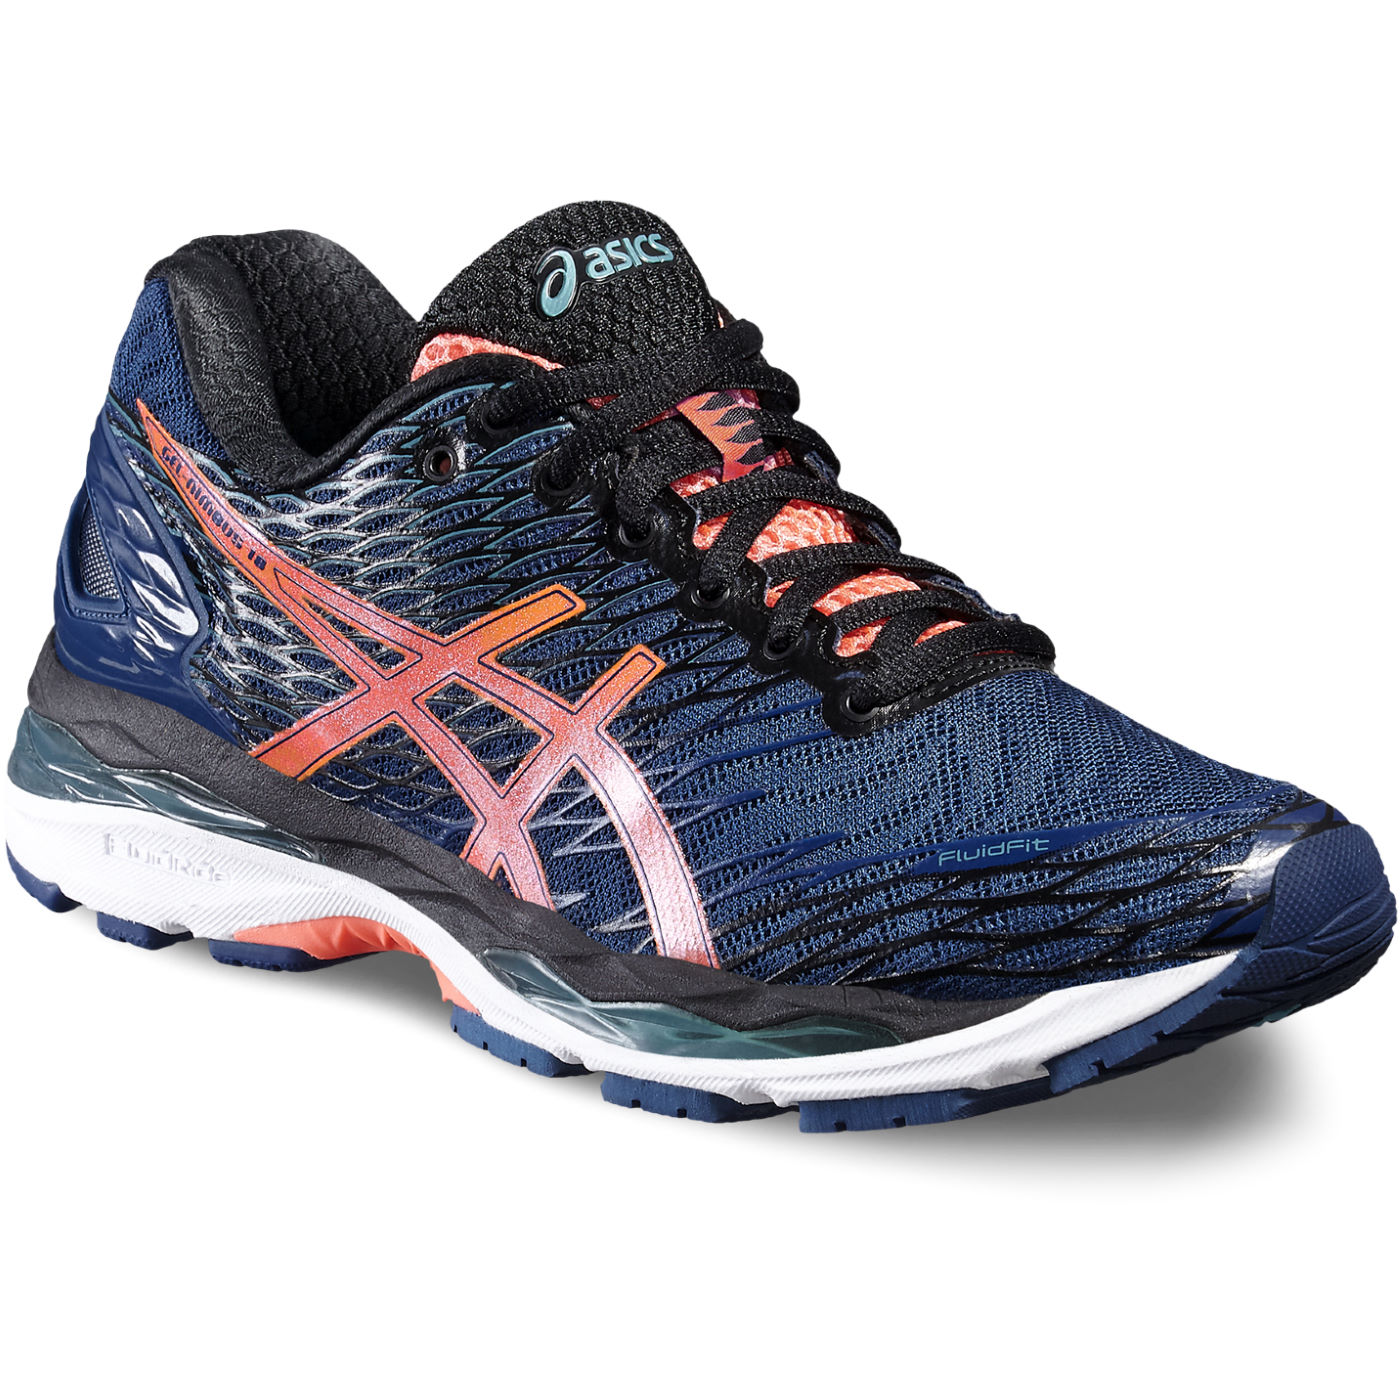 asics nimbus 18 women black